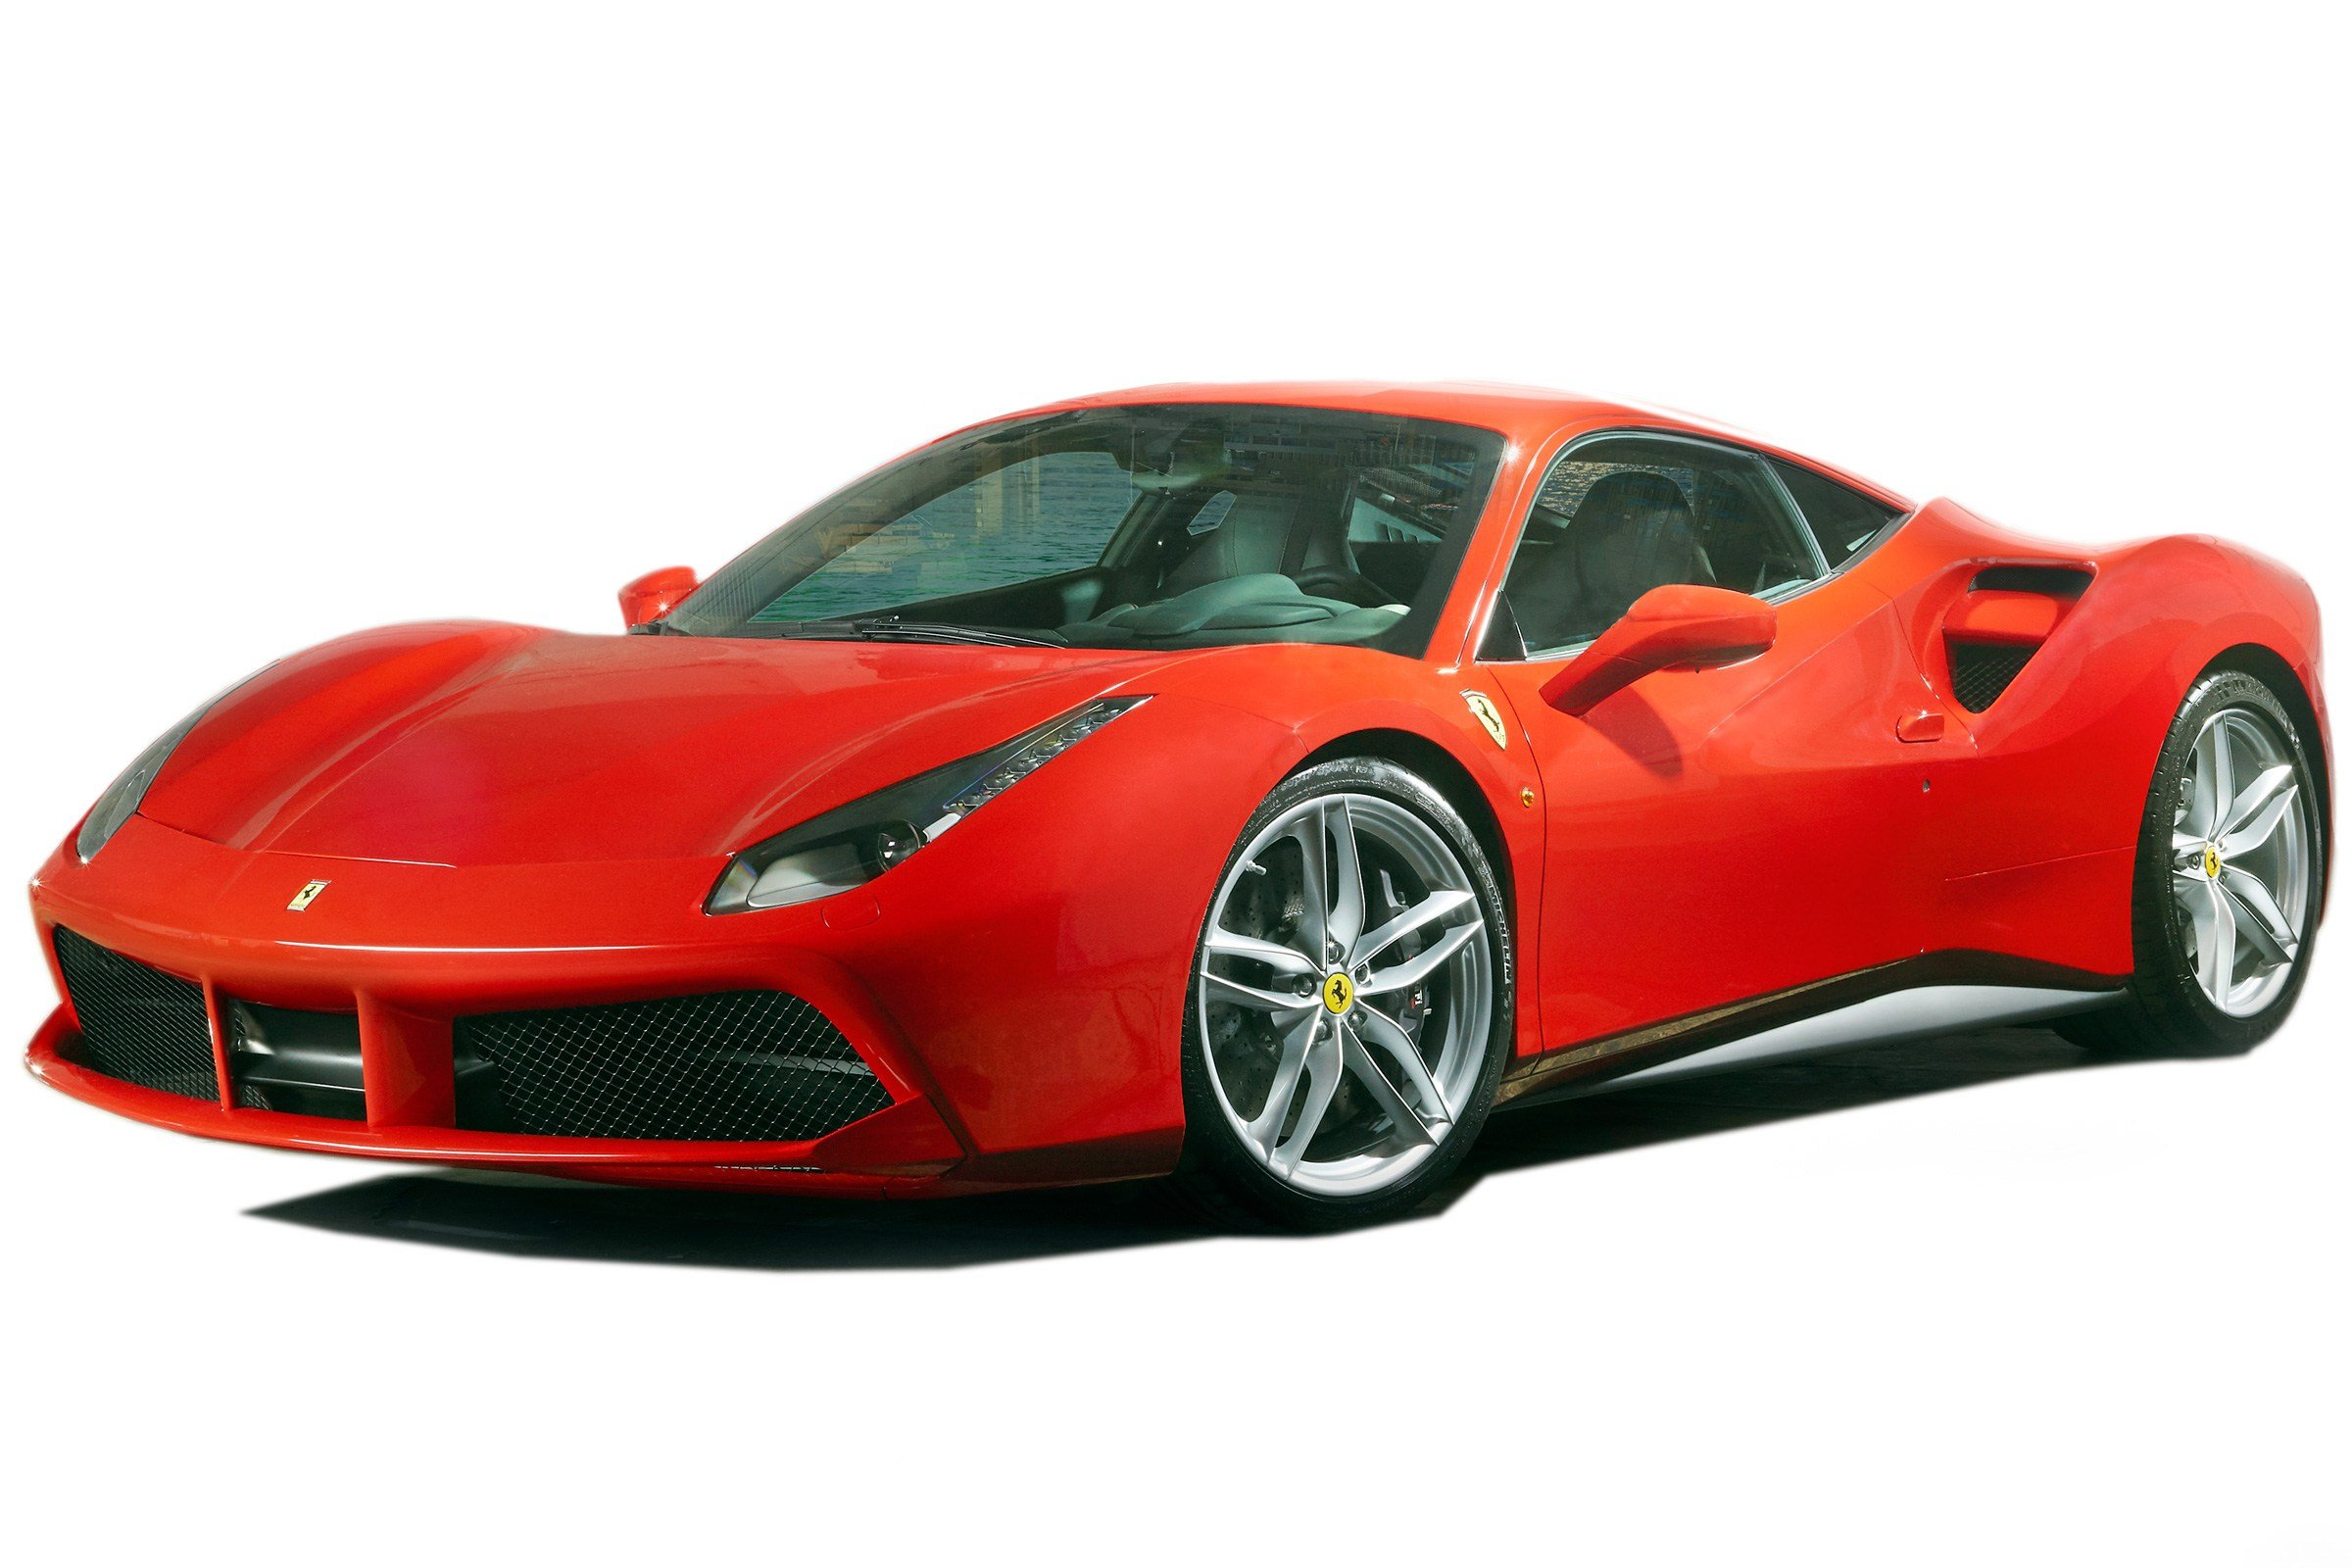 New Ferrari 488 Gtb Coupe Review Carbuyer On This Month